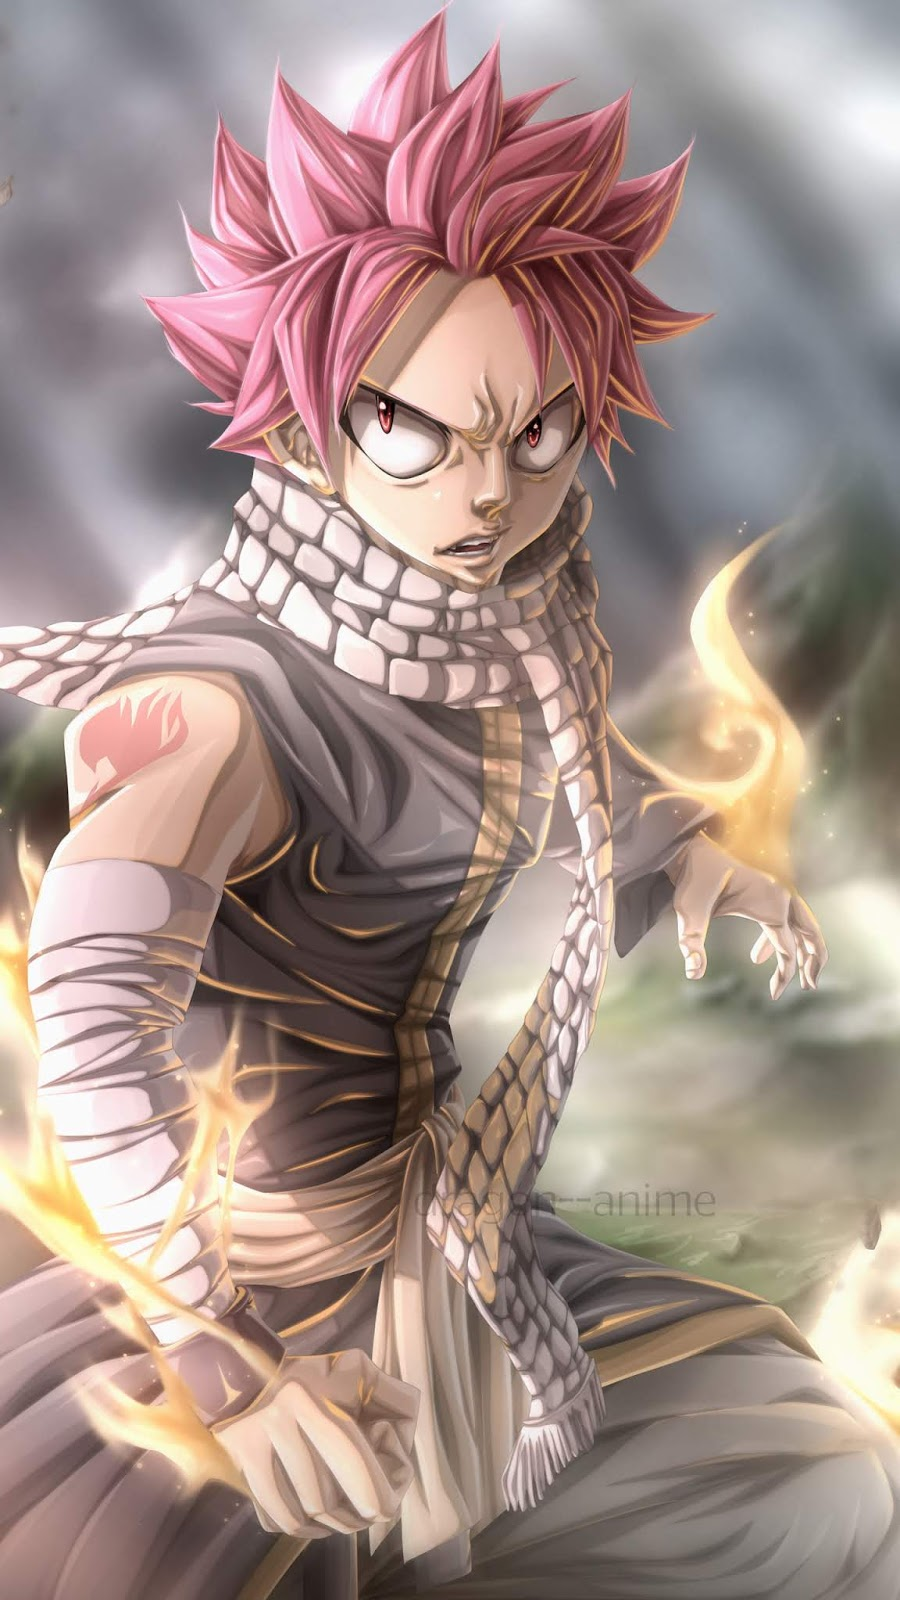 Wallpapers 4k para Celular: Fairy Tail